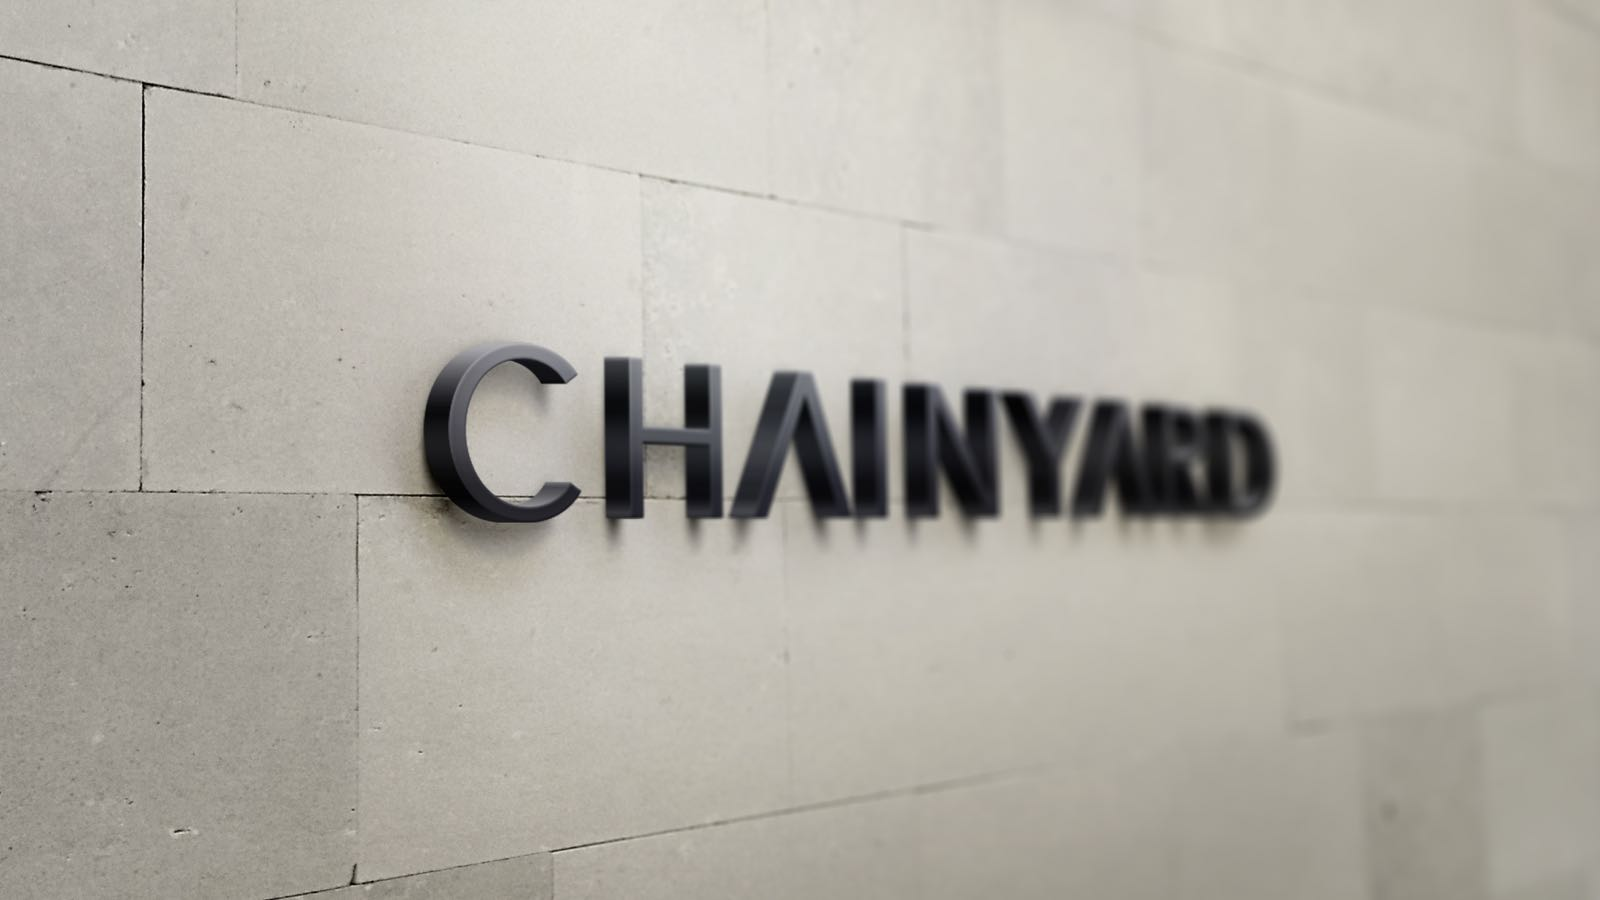 The Chainyard logo mounted on a brick wall